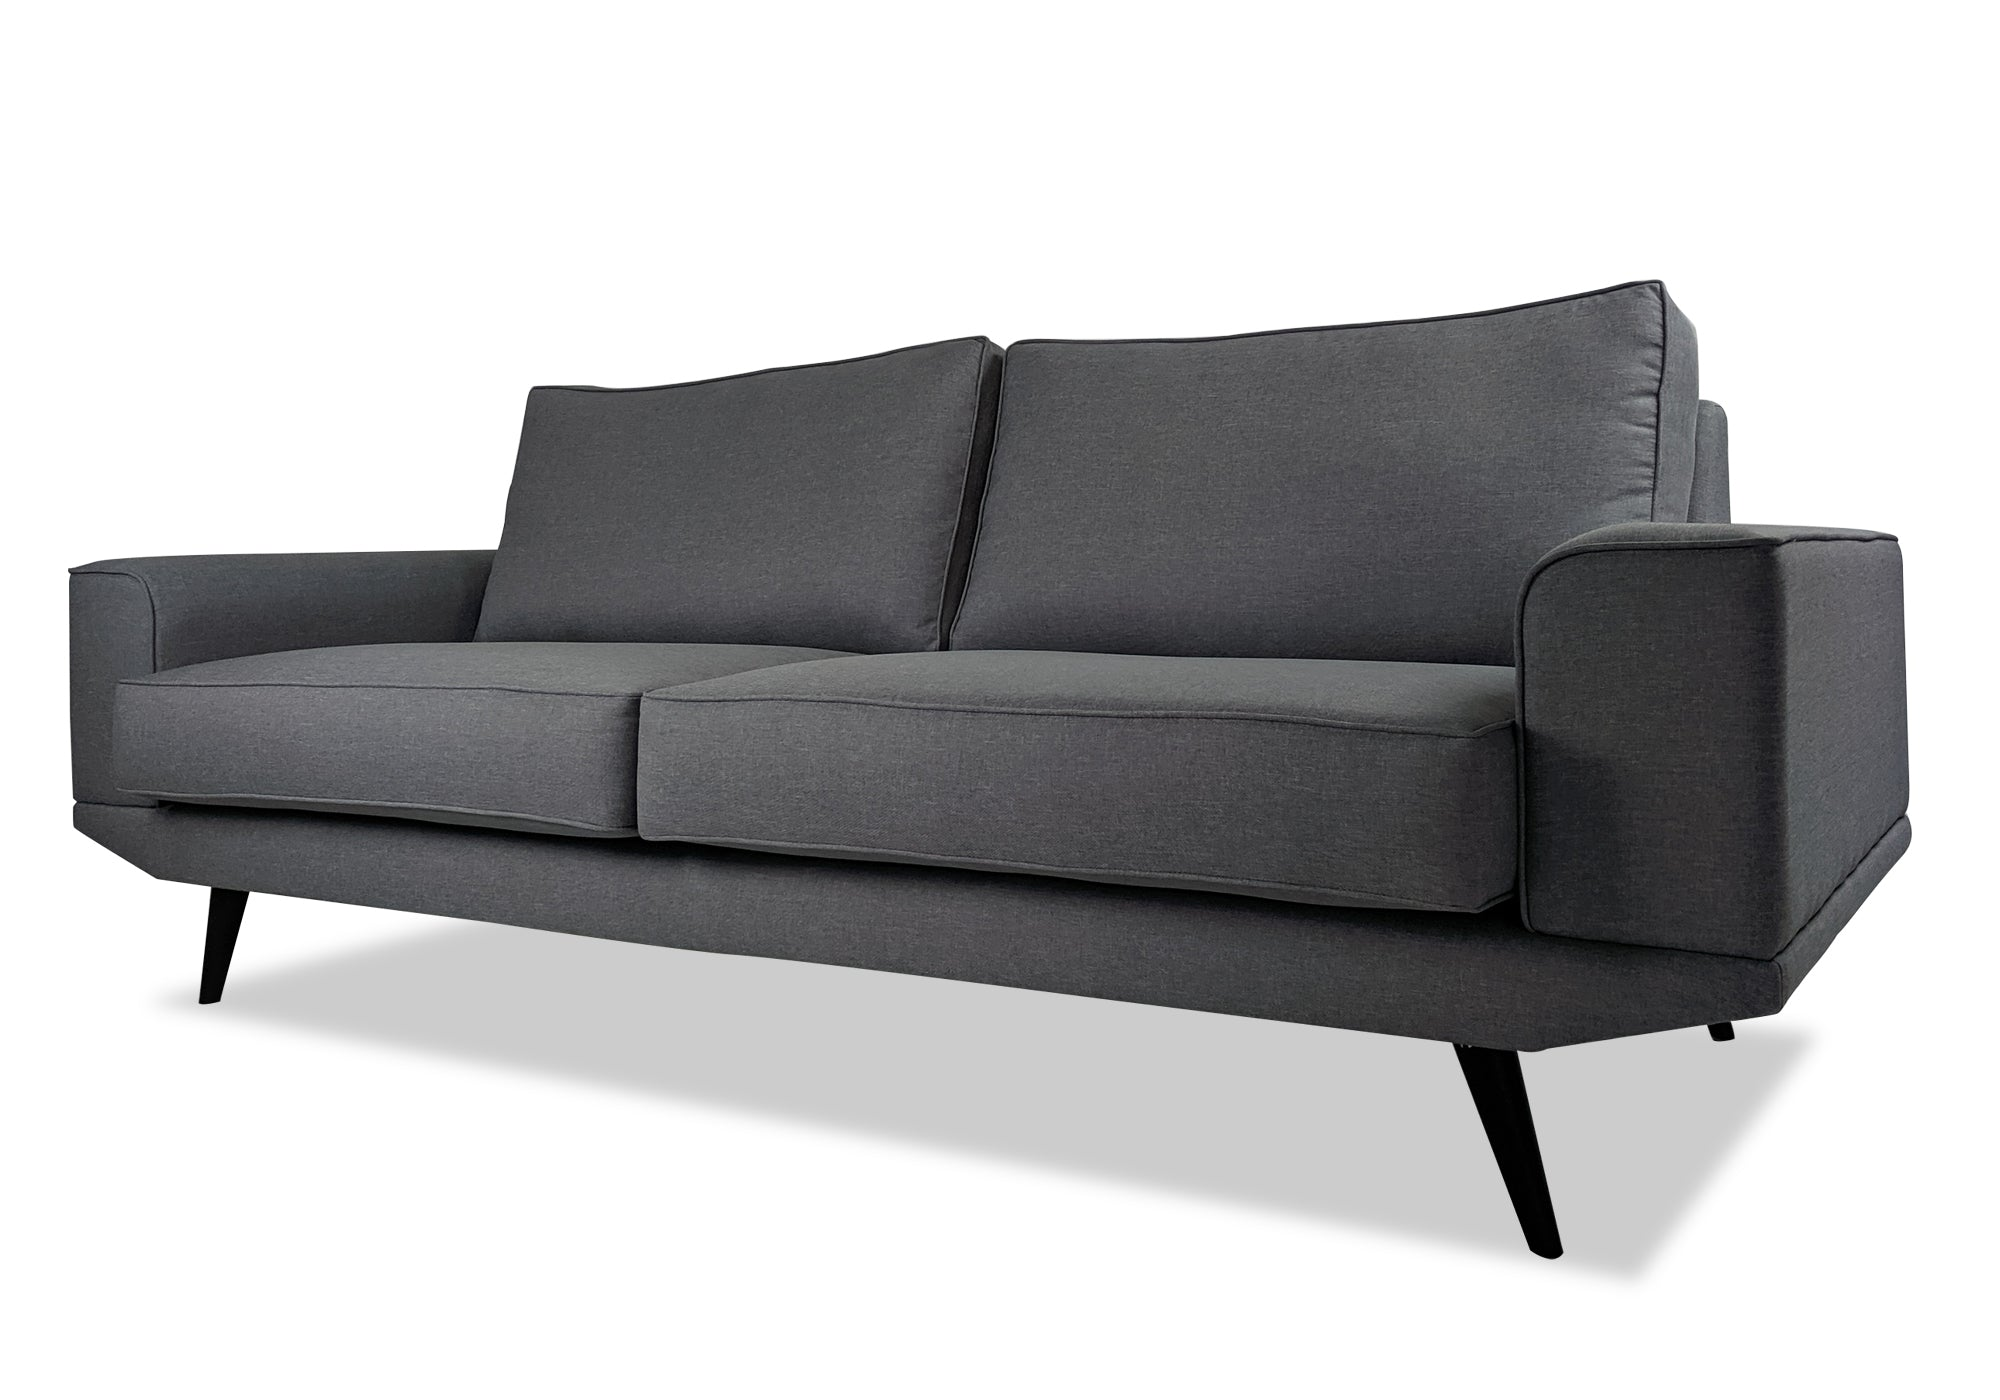 Admirable Lyndon 2 75 Seater Sofa Handcrafted In Perth Domain Caraccident5 Cool Chair Designs And Ideas Caraccident5Info